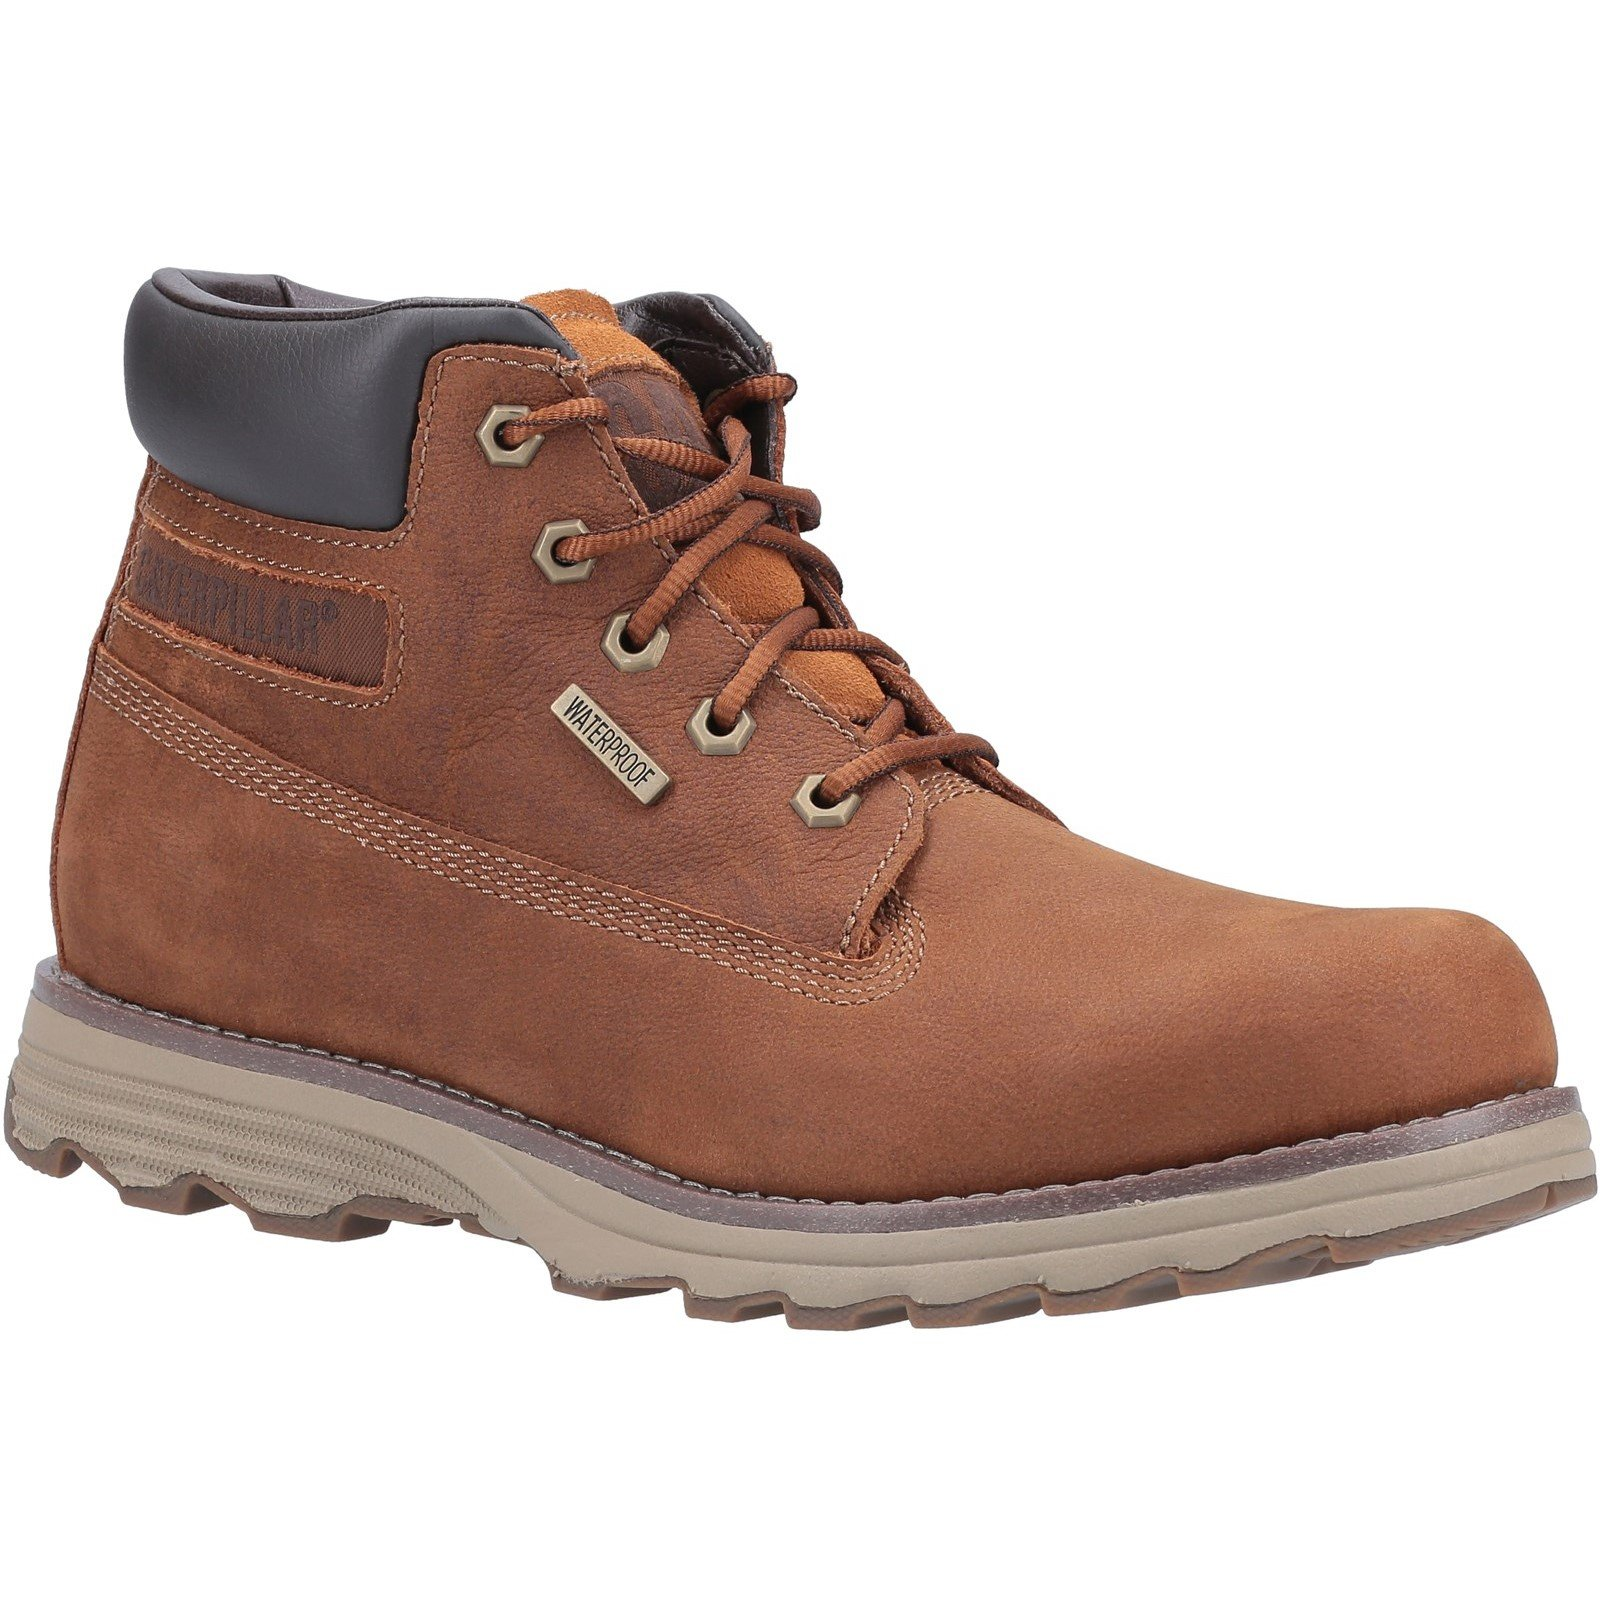 CAT Lifestyle Men's Founder WP TX Lace Up Boot 31487-53851 - Danish Brown 8